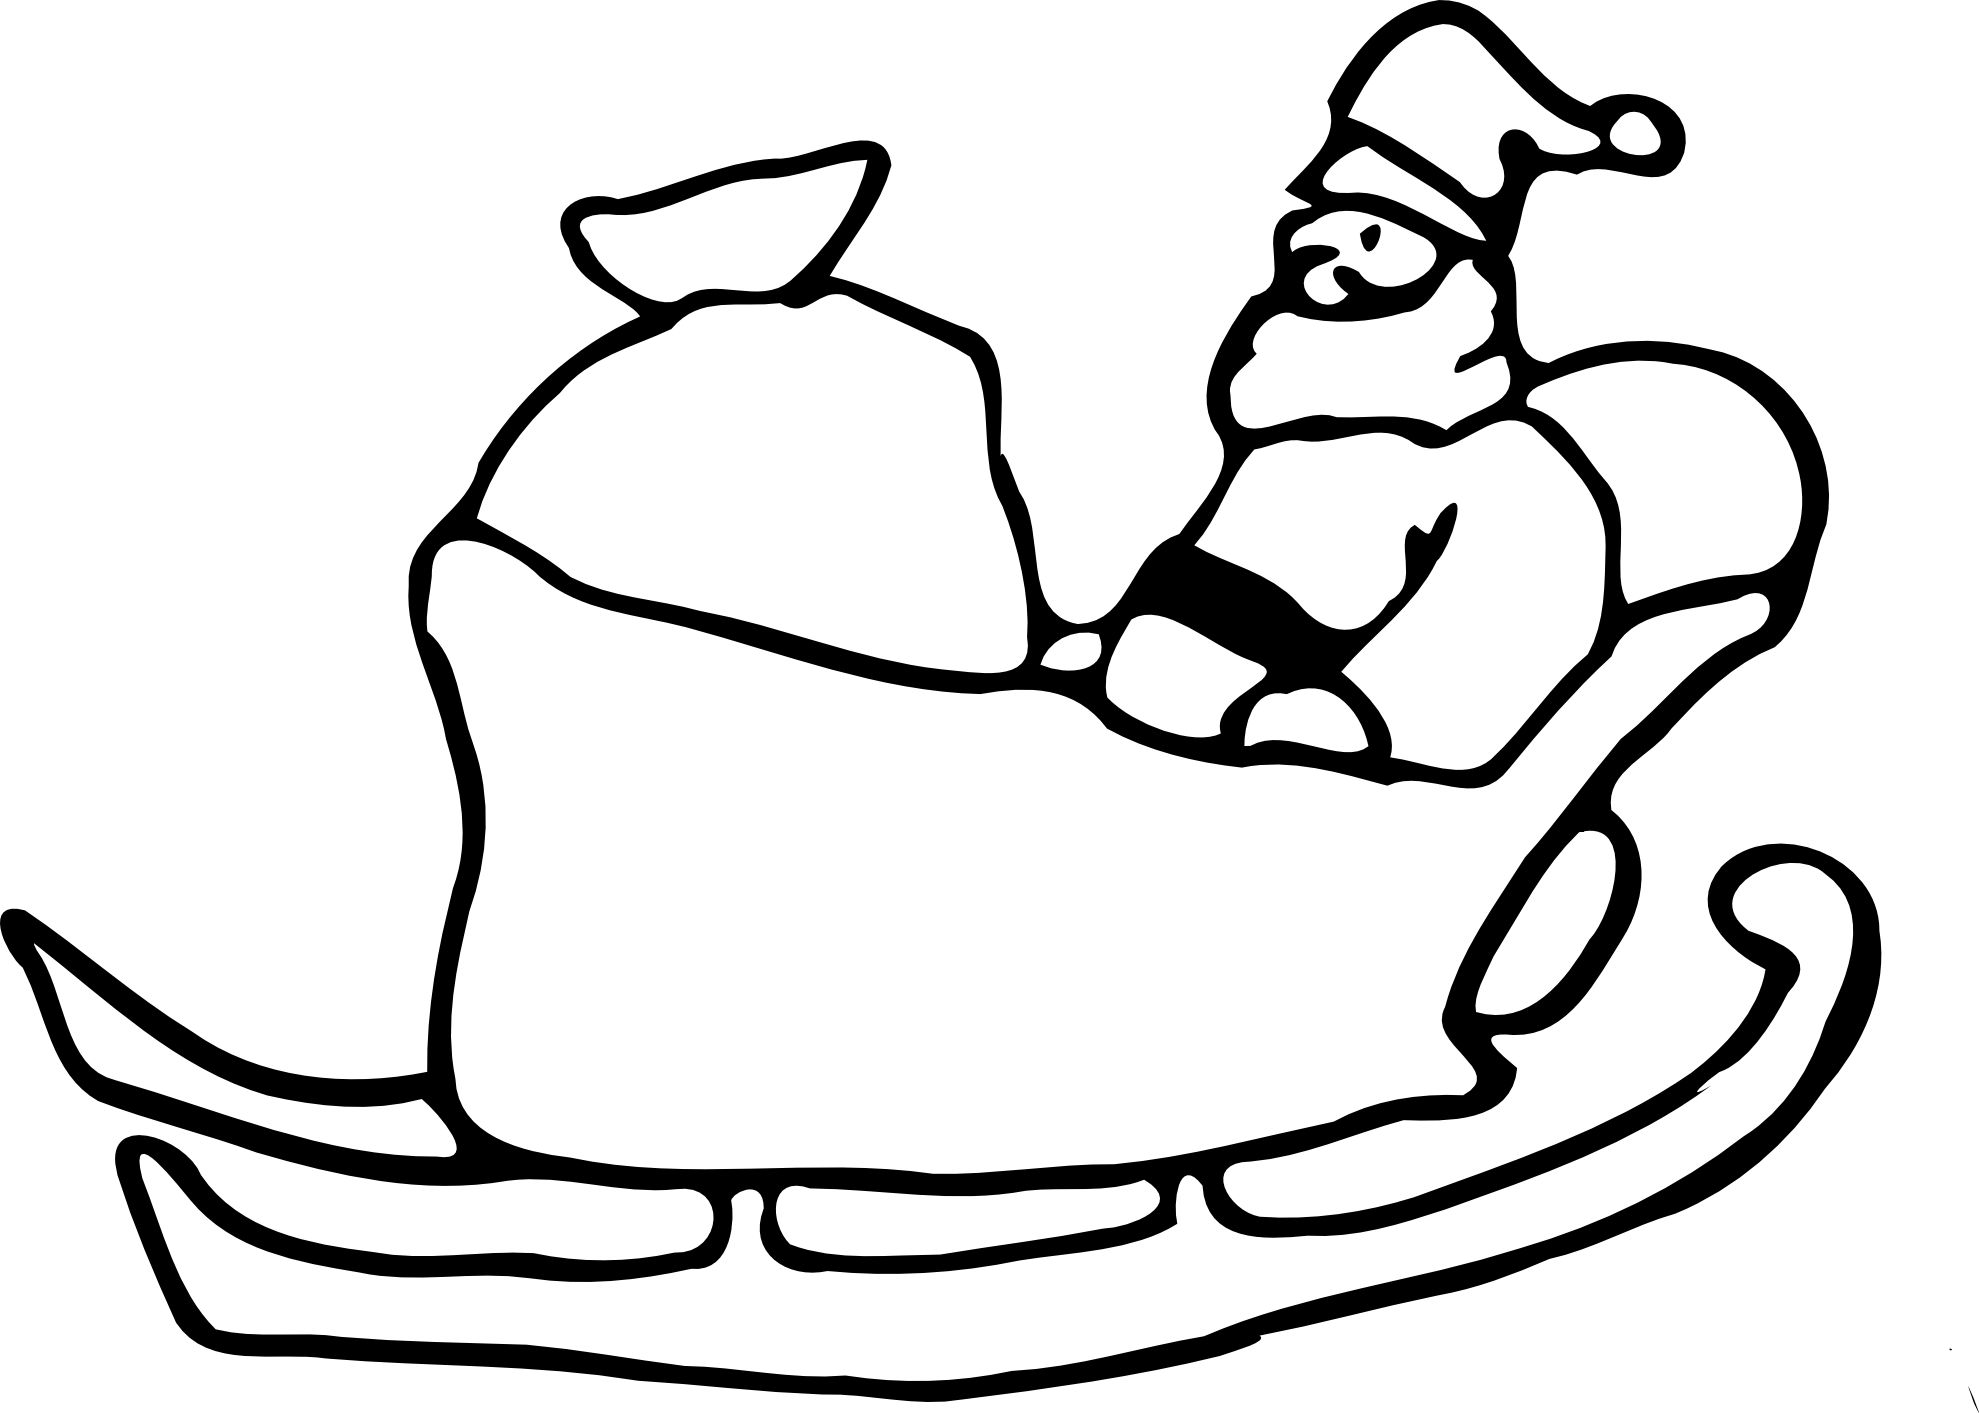 Sledding drawing. Santa sled at getdrawings